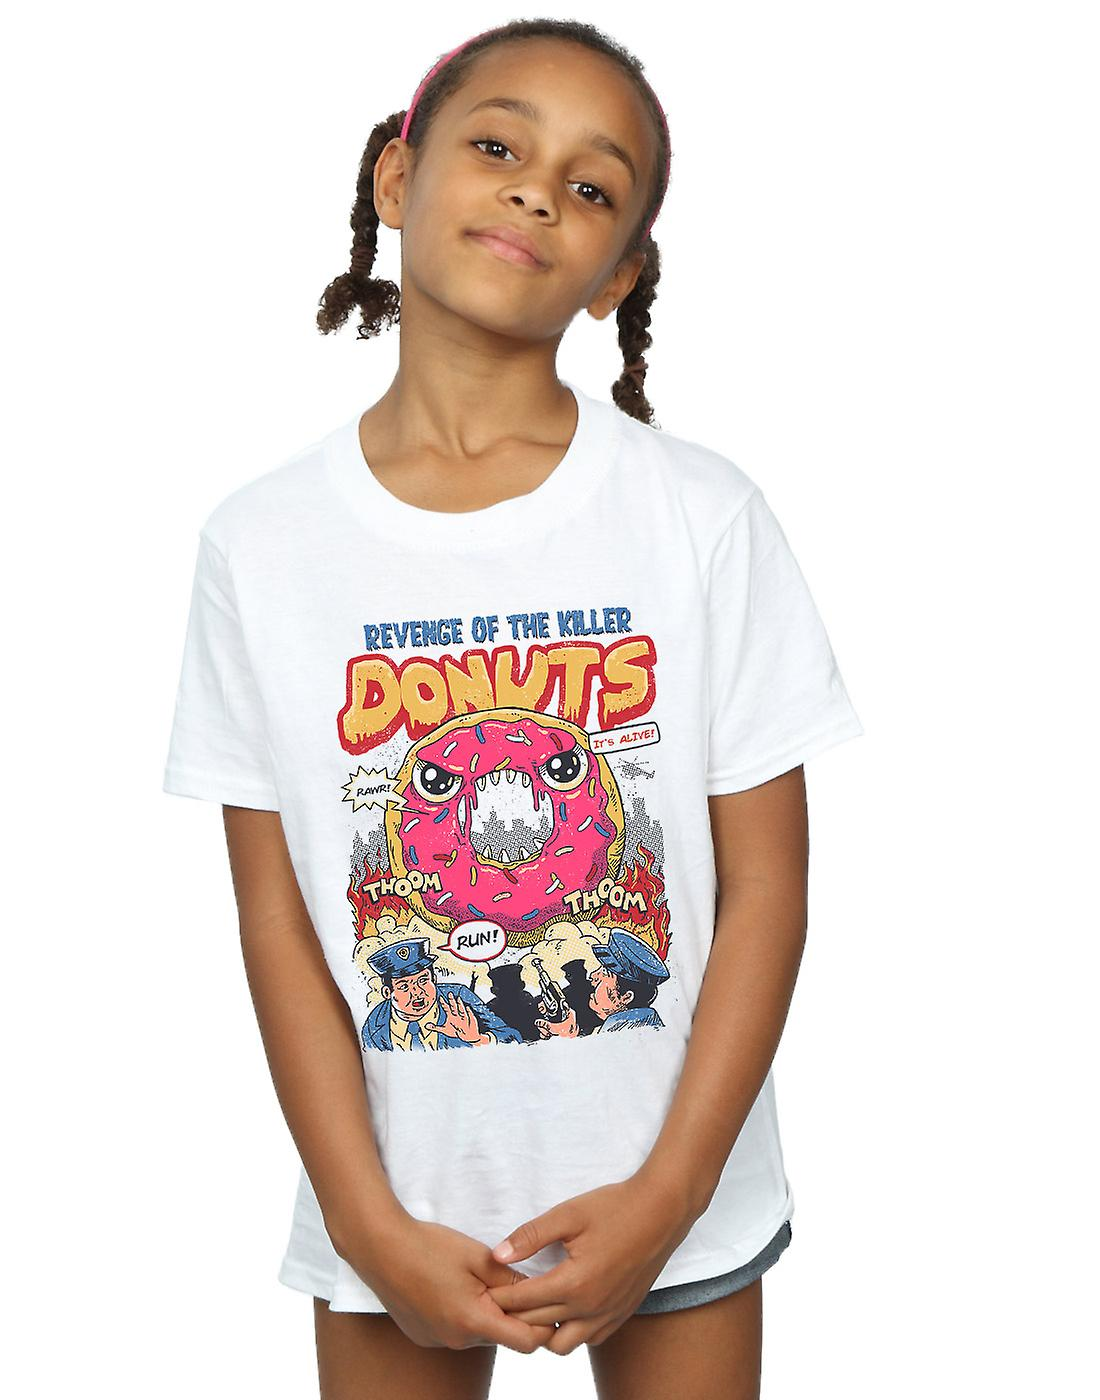 Vincent Trinidad Girls Revenge Of The Killer Donuts T-Shirt